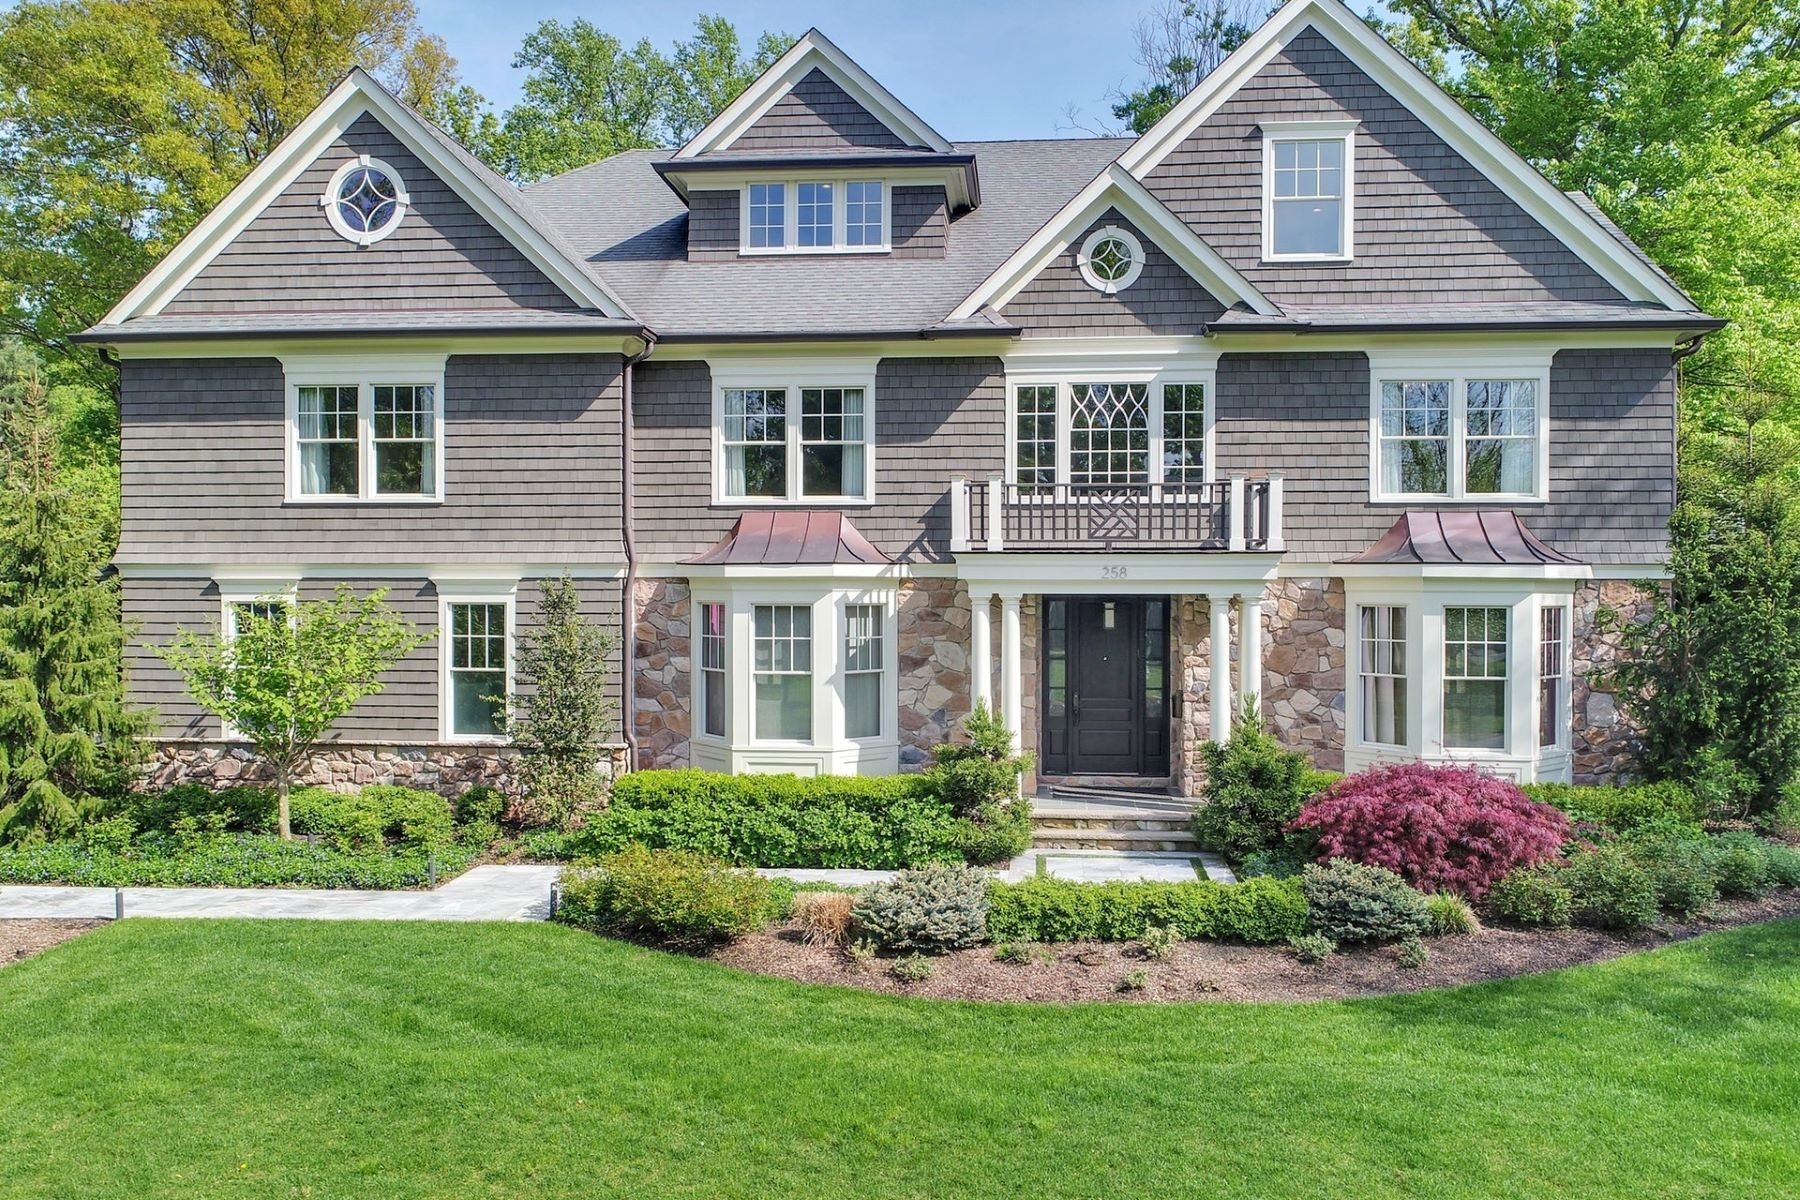 Single Family Home for Sale at Stylish Sensation 258 Long Hill Drive, Short Hills, New Jersey 07078 United States